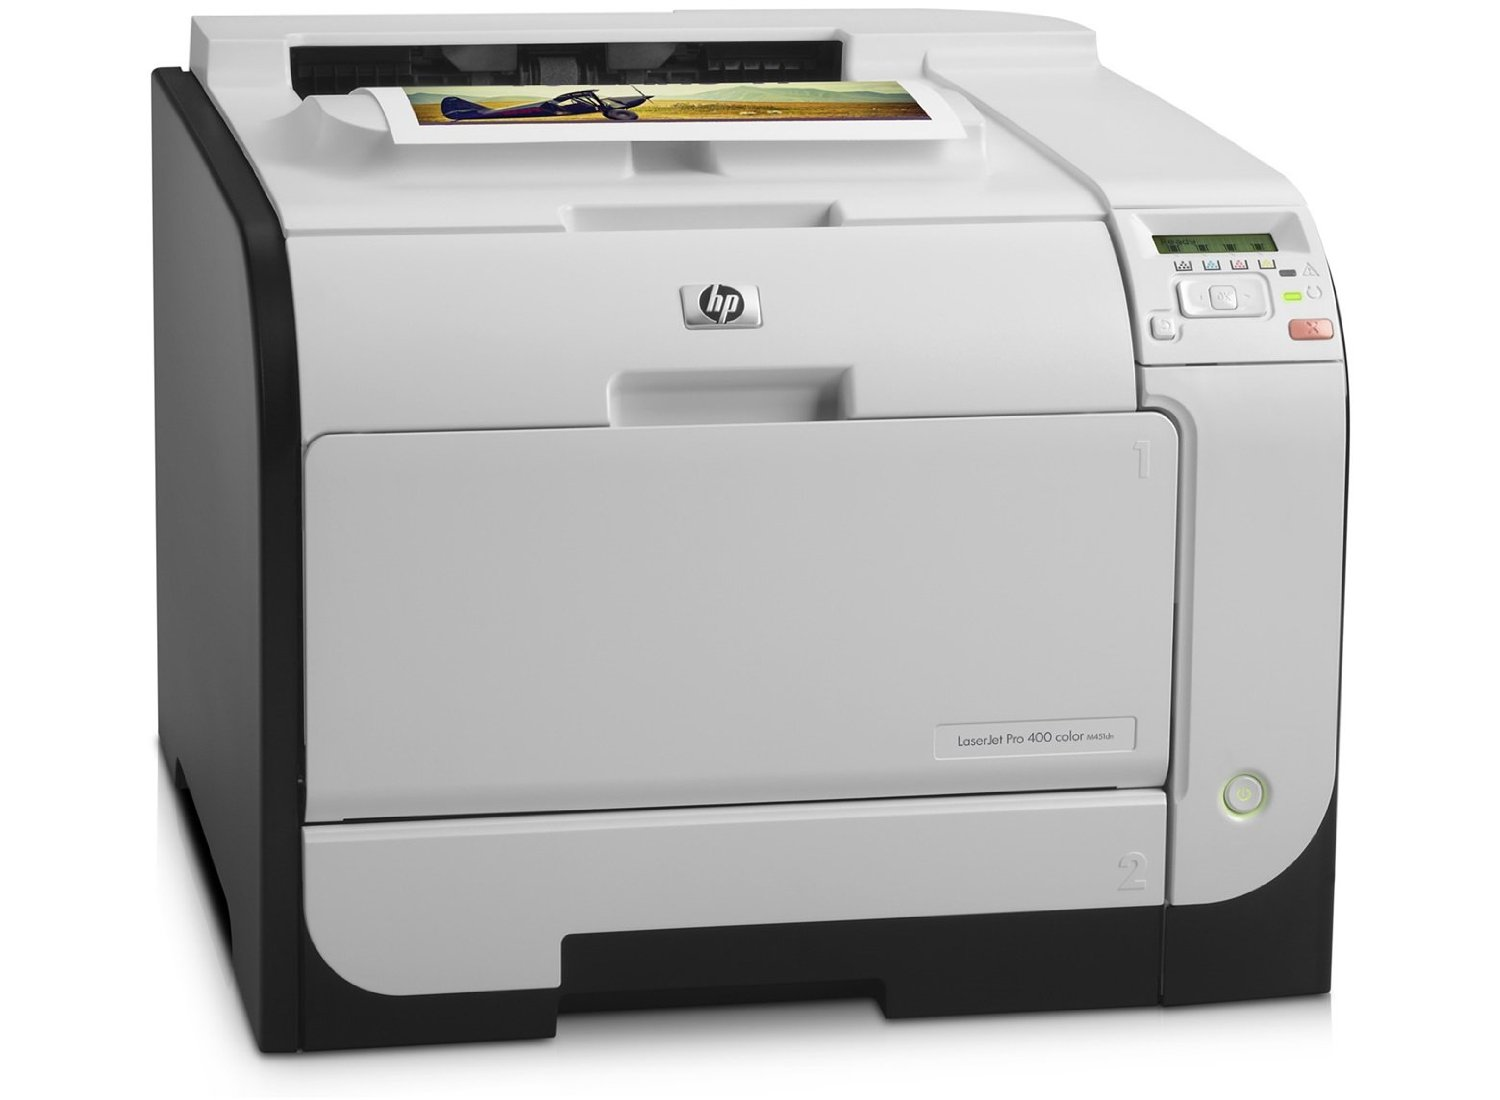 LASERJET HP 7 WINDOWS IMPRIMANTE GRATUIT DRIVER GRATUIT P2035 TÉLÉCHARGER